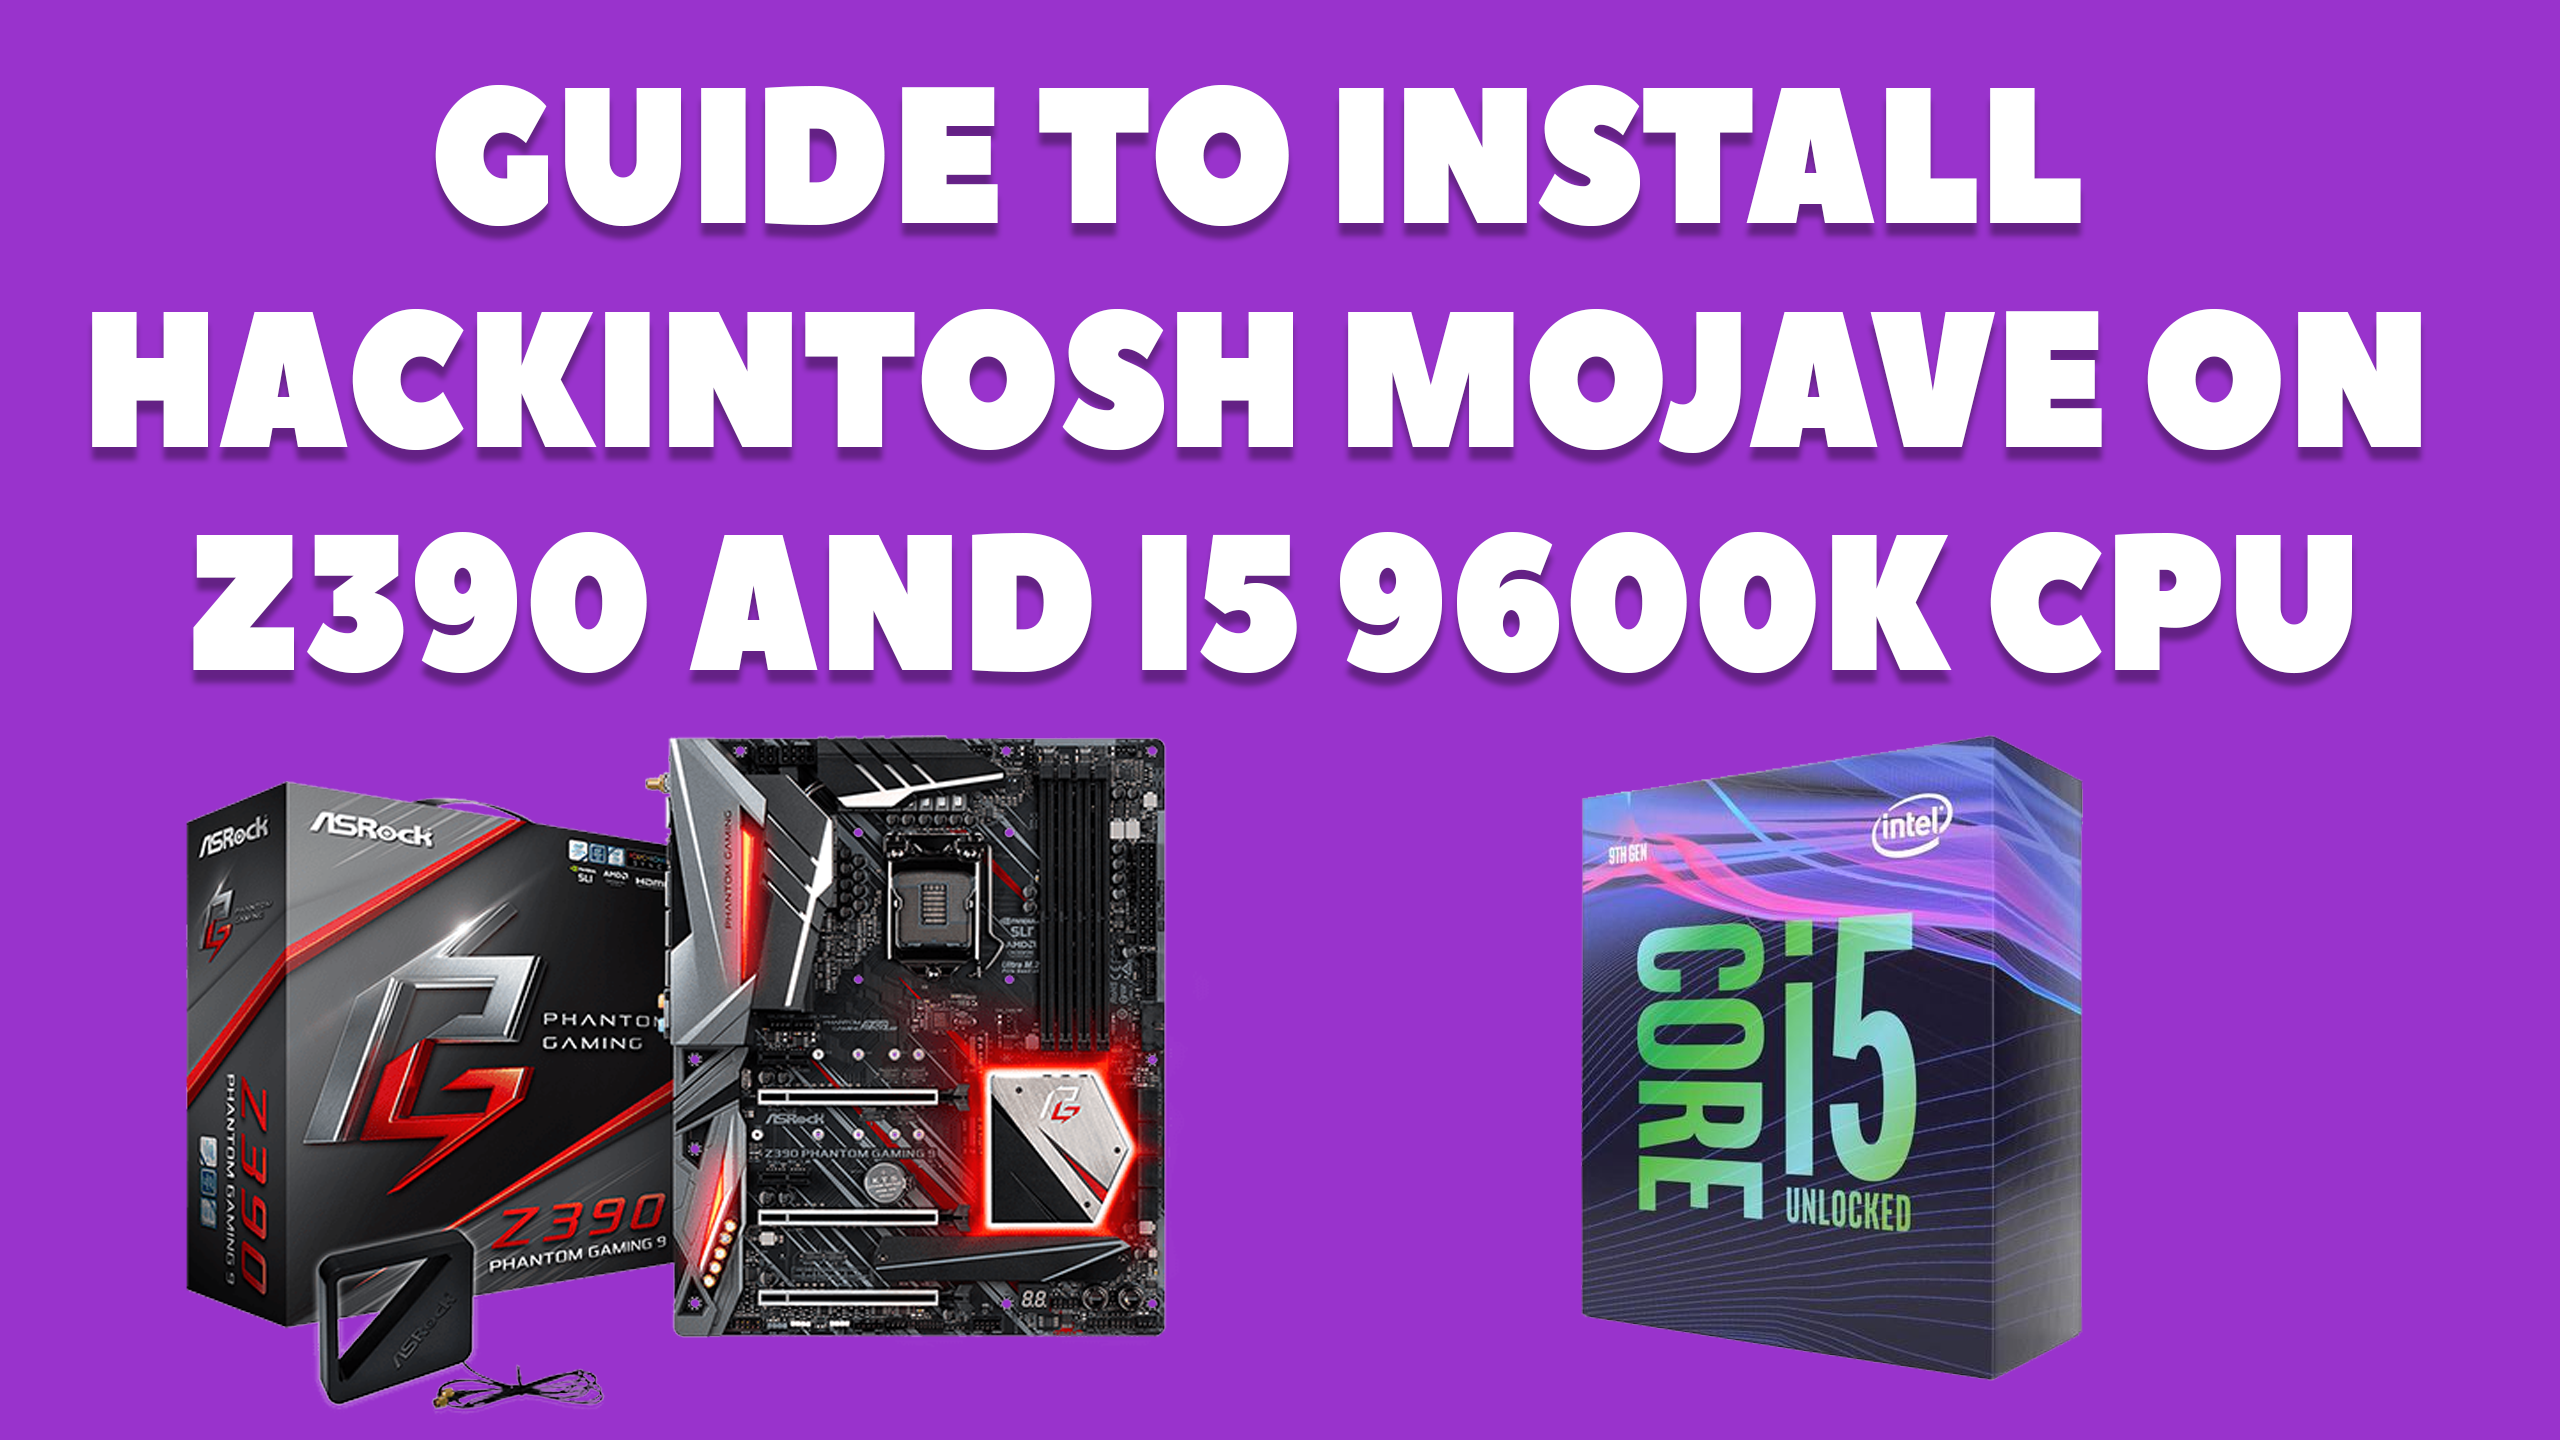 Step BY Step Process to Install Hackintosh Mojave on Z390